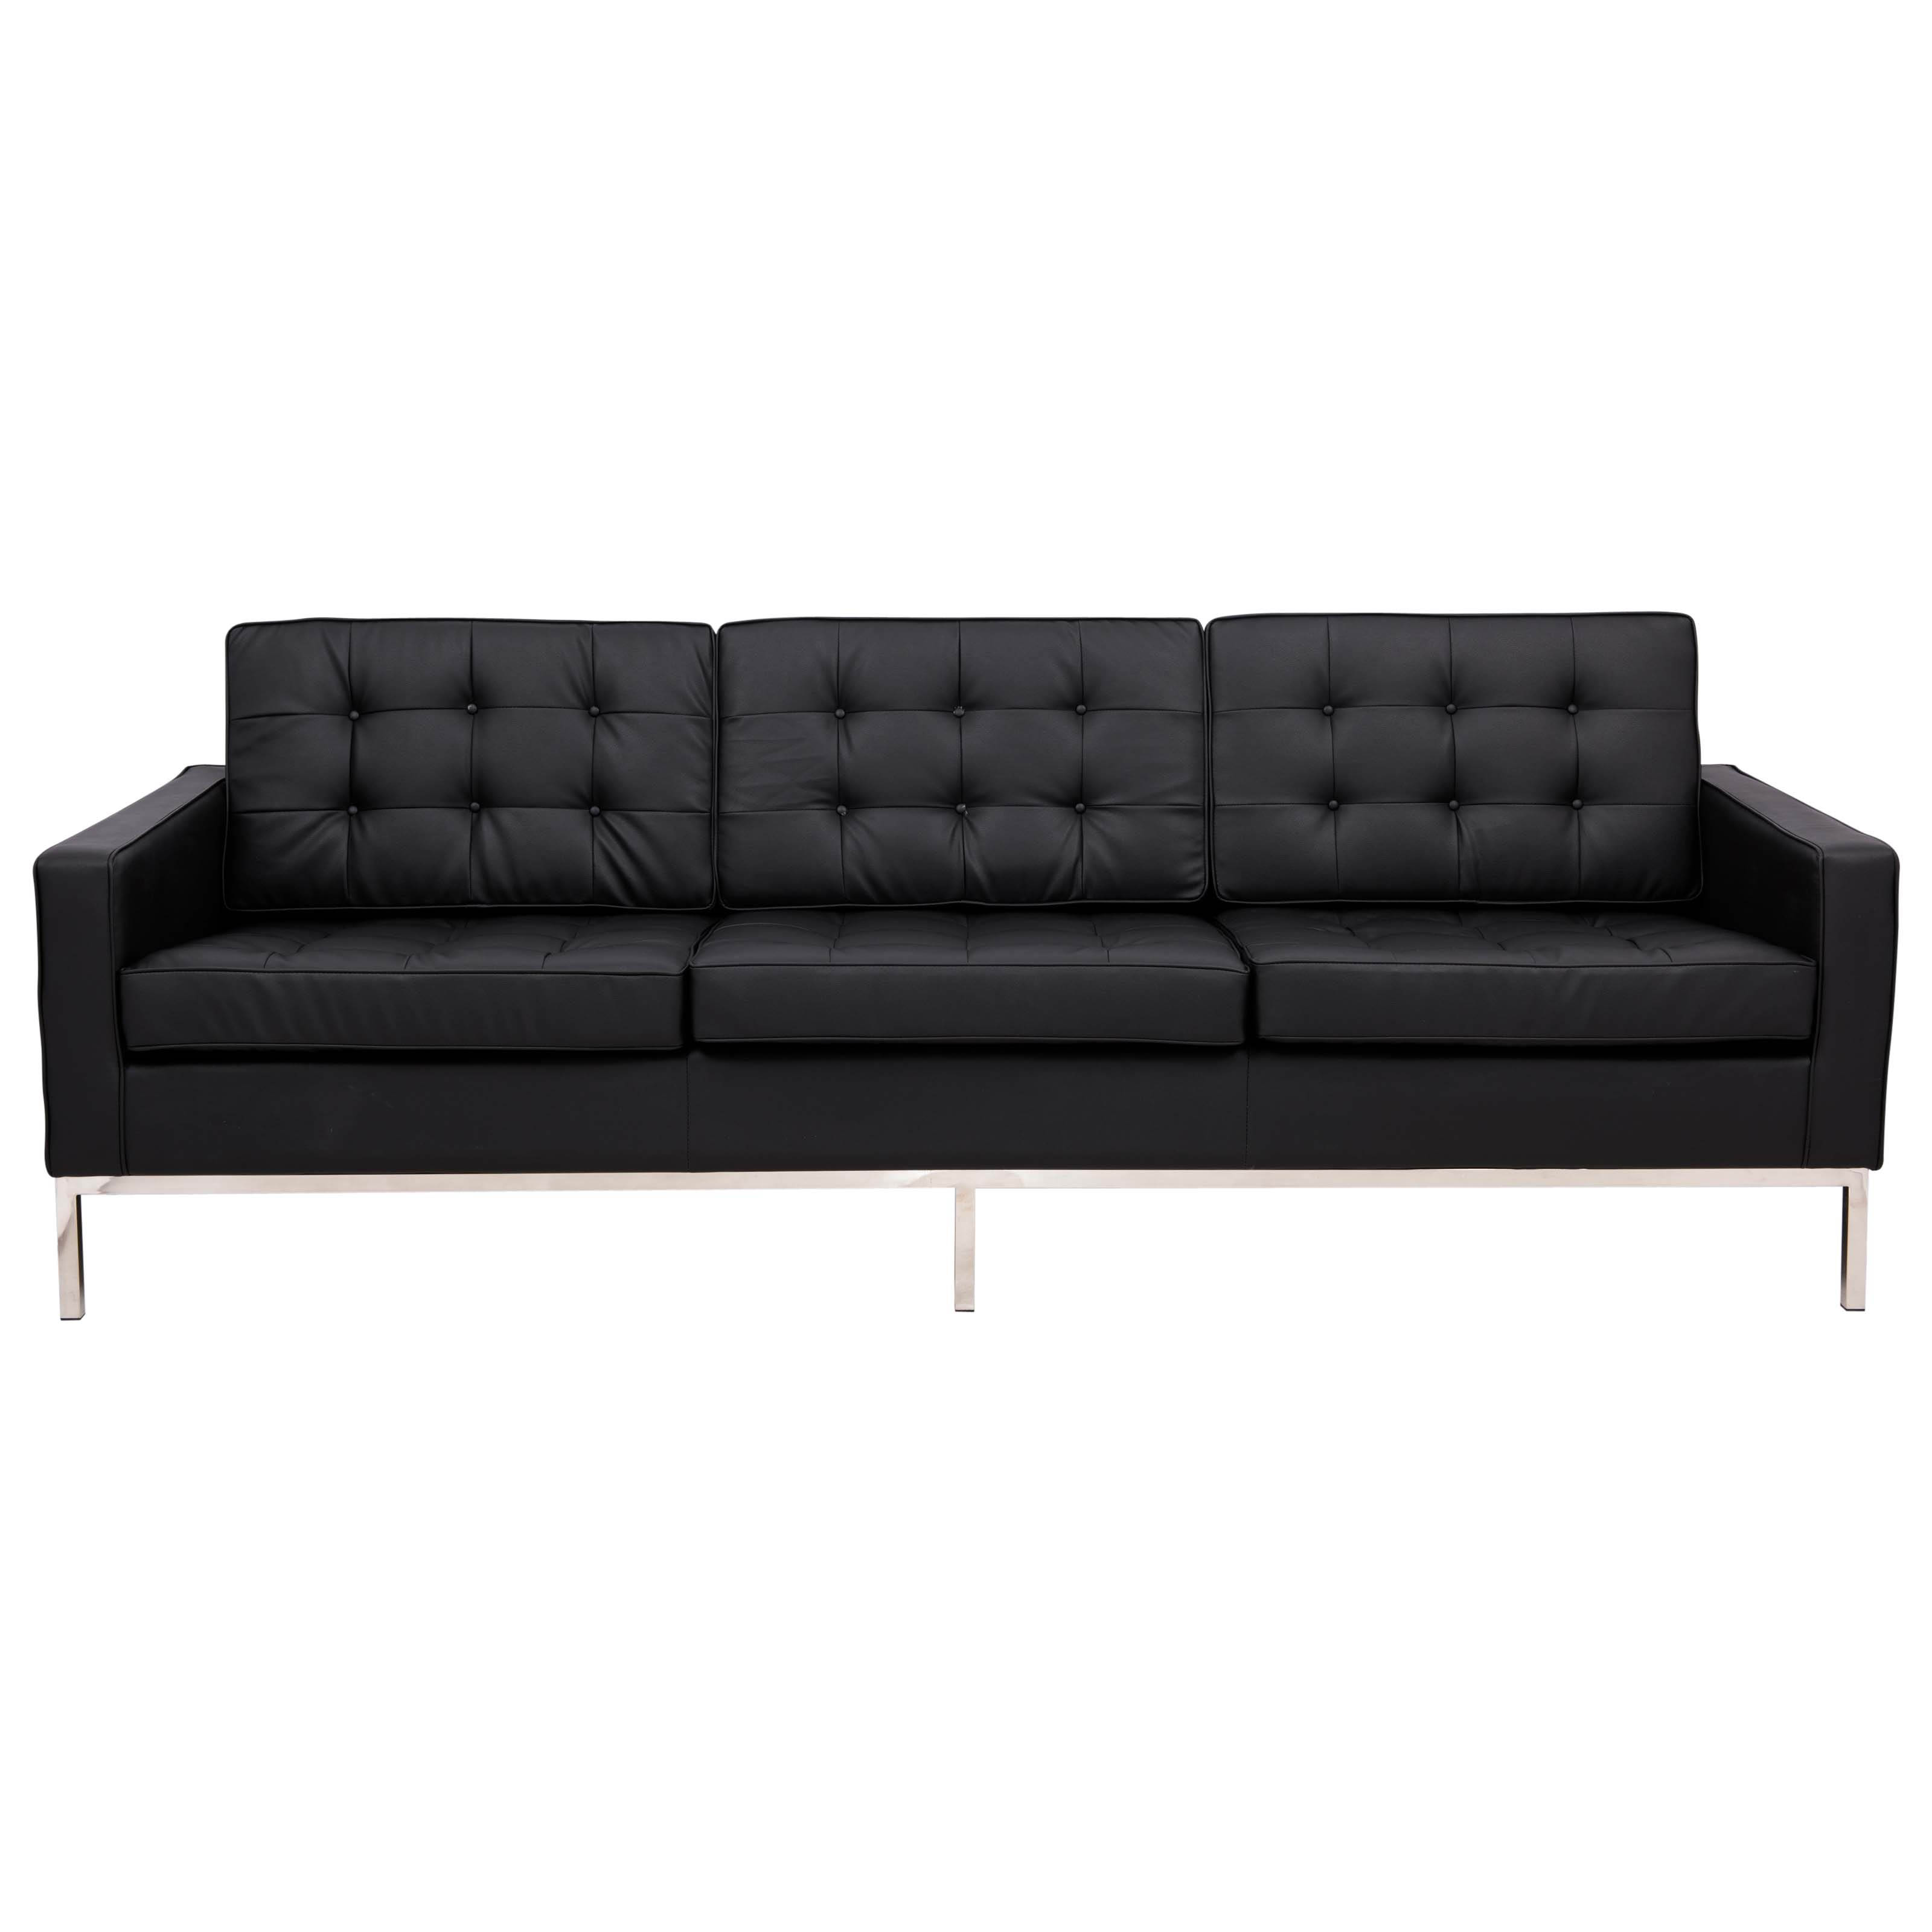 LeisureMod Florence Black Faux Leather Sofa